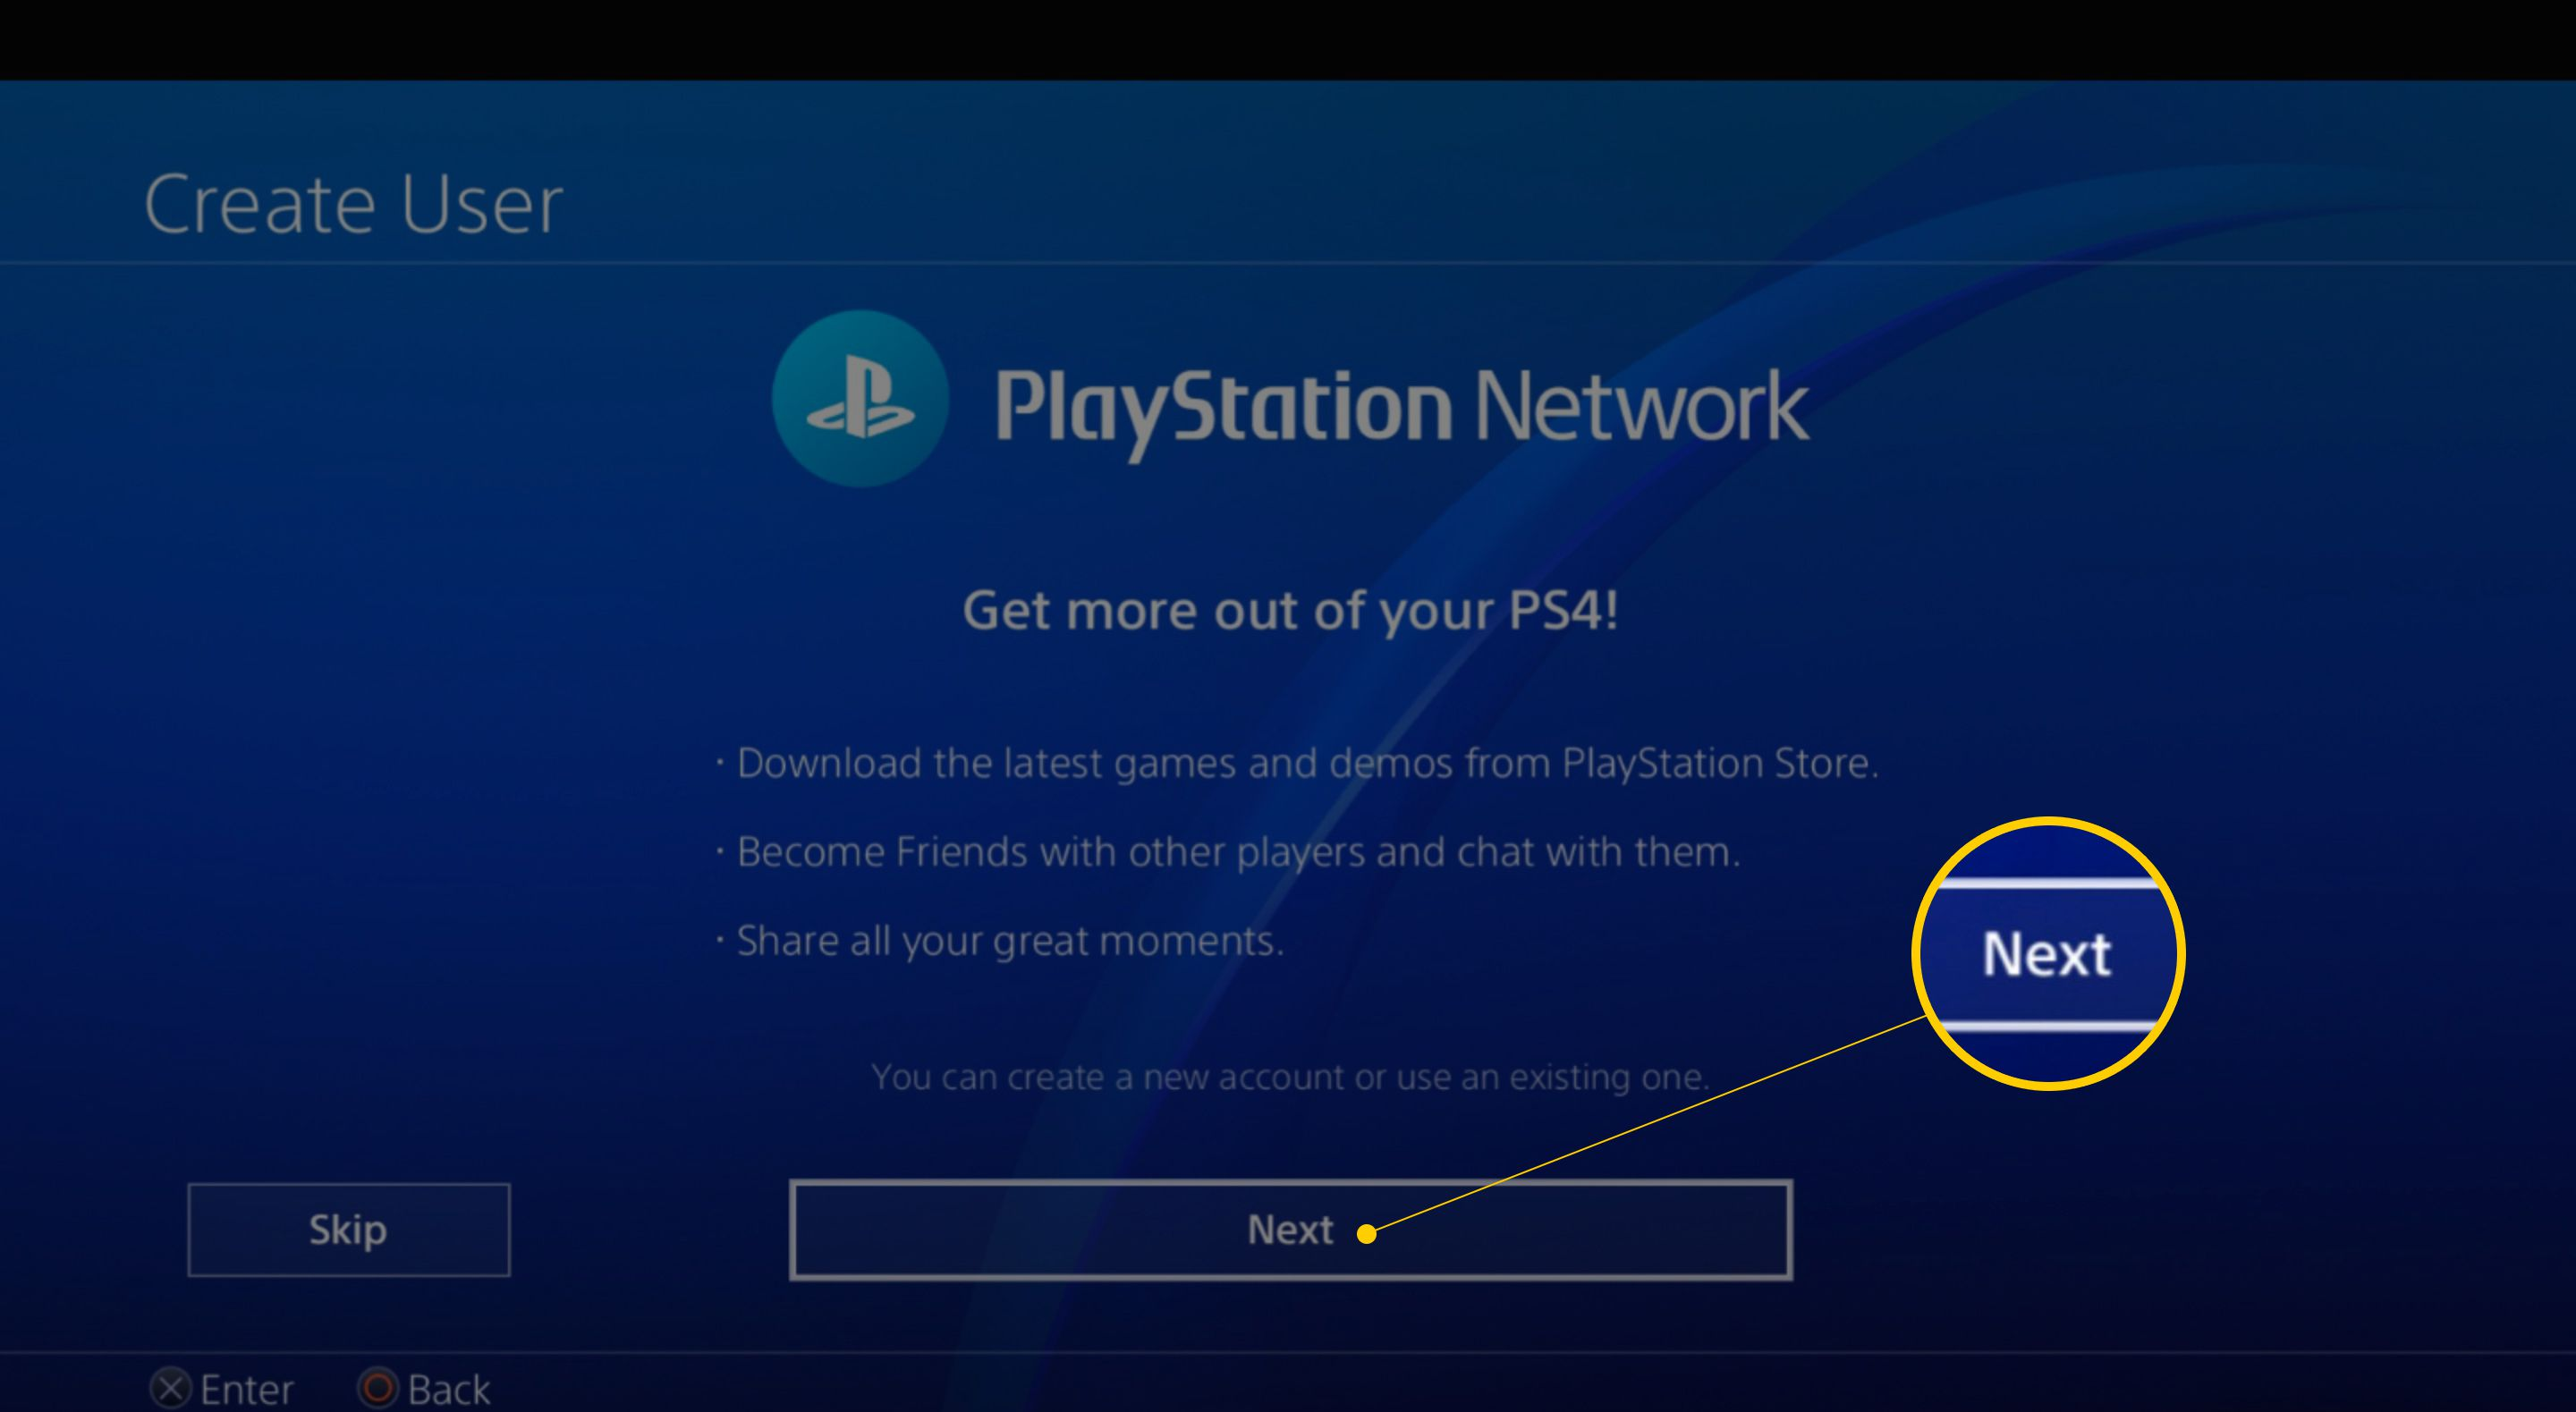 How To Create A Playstation Network Account